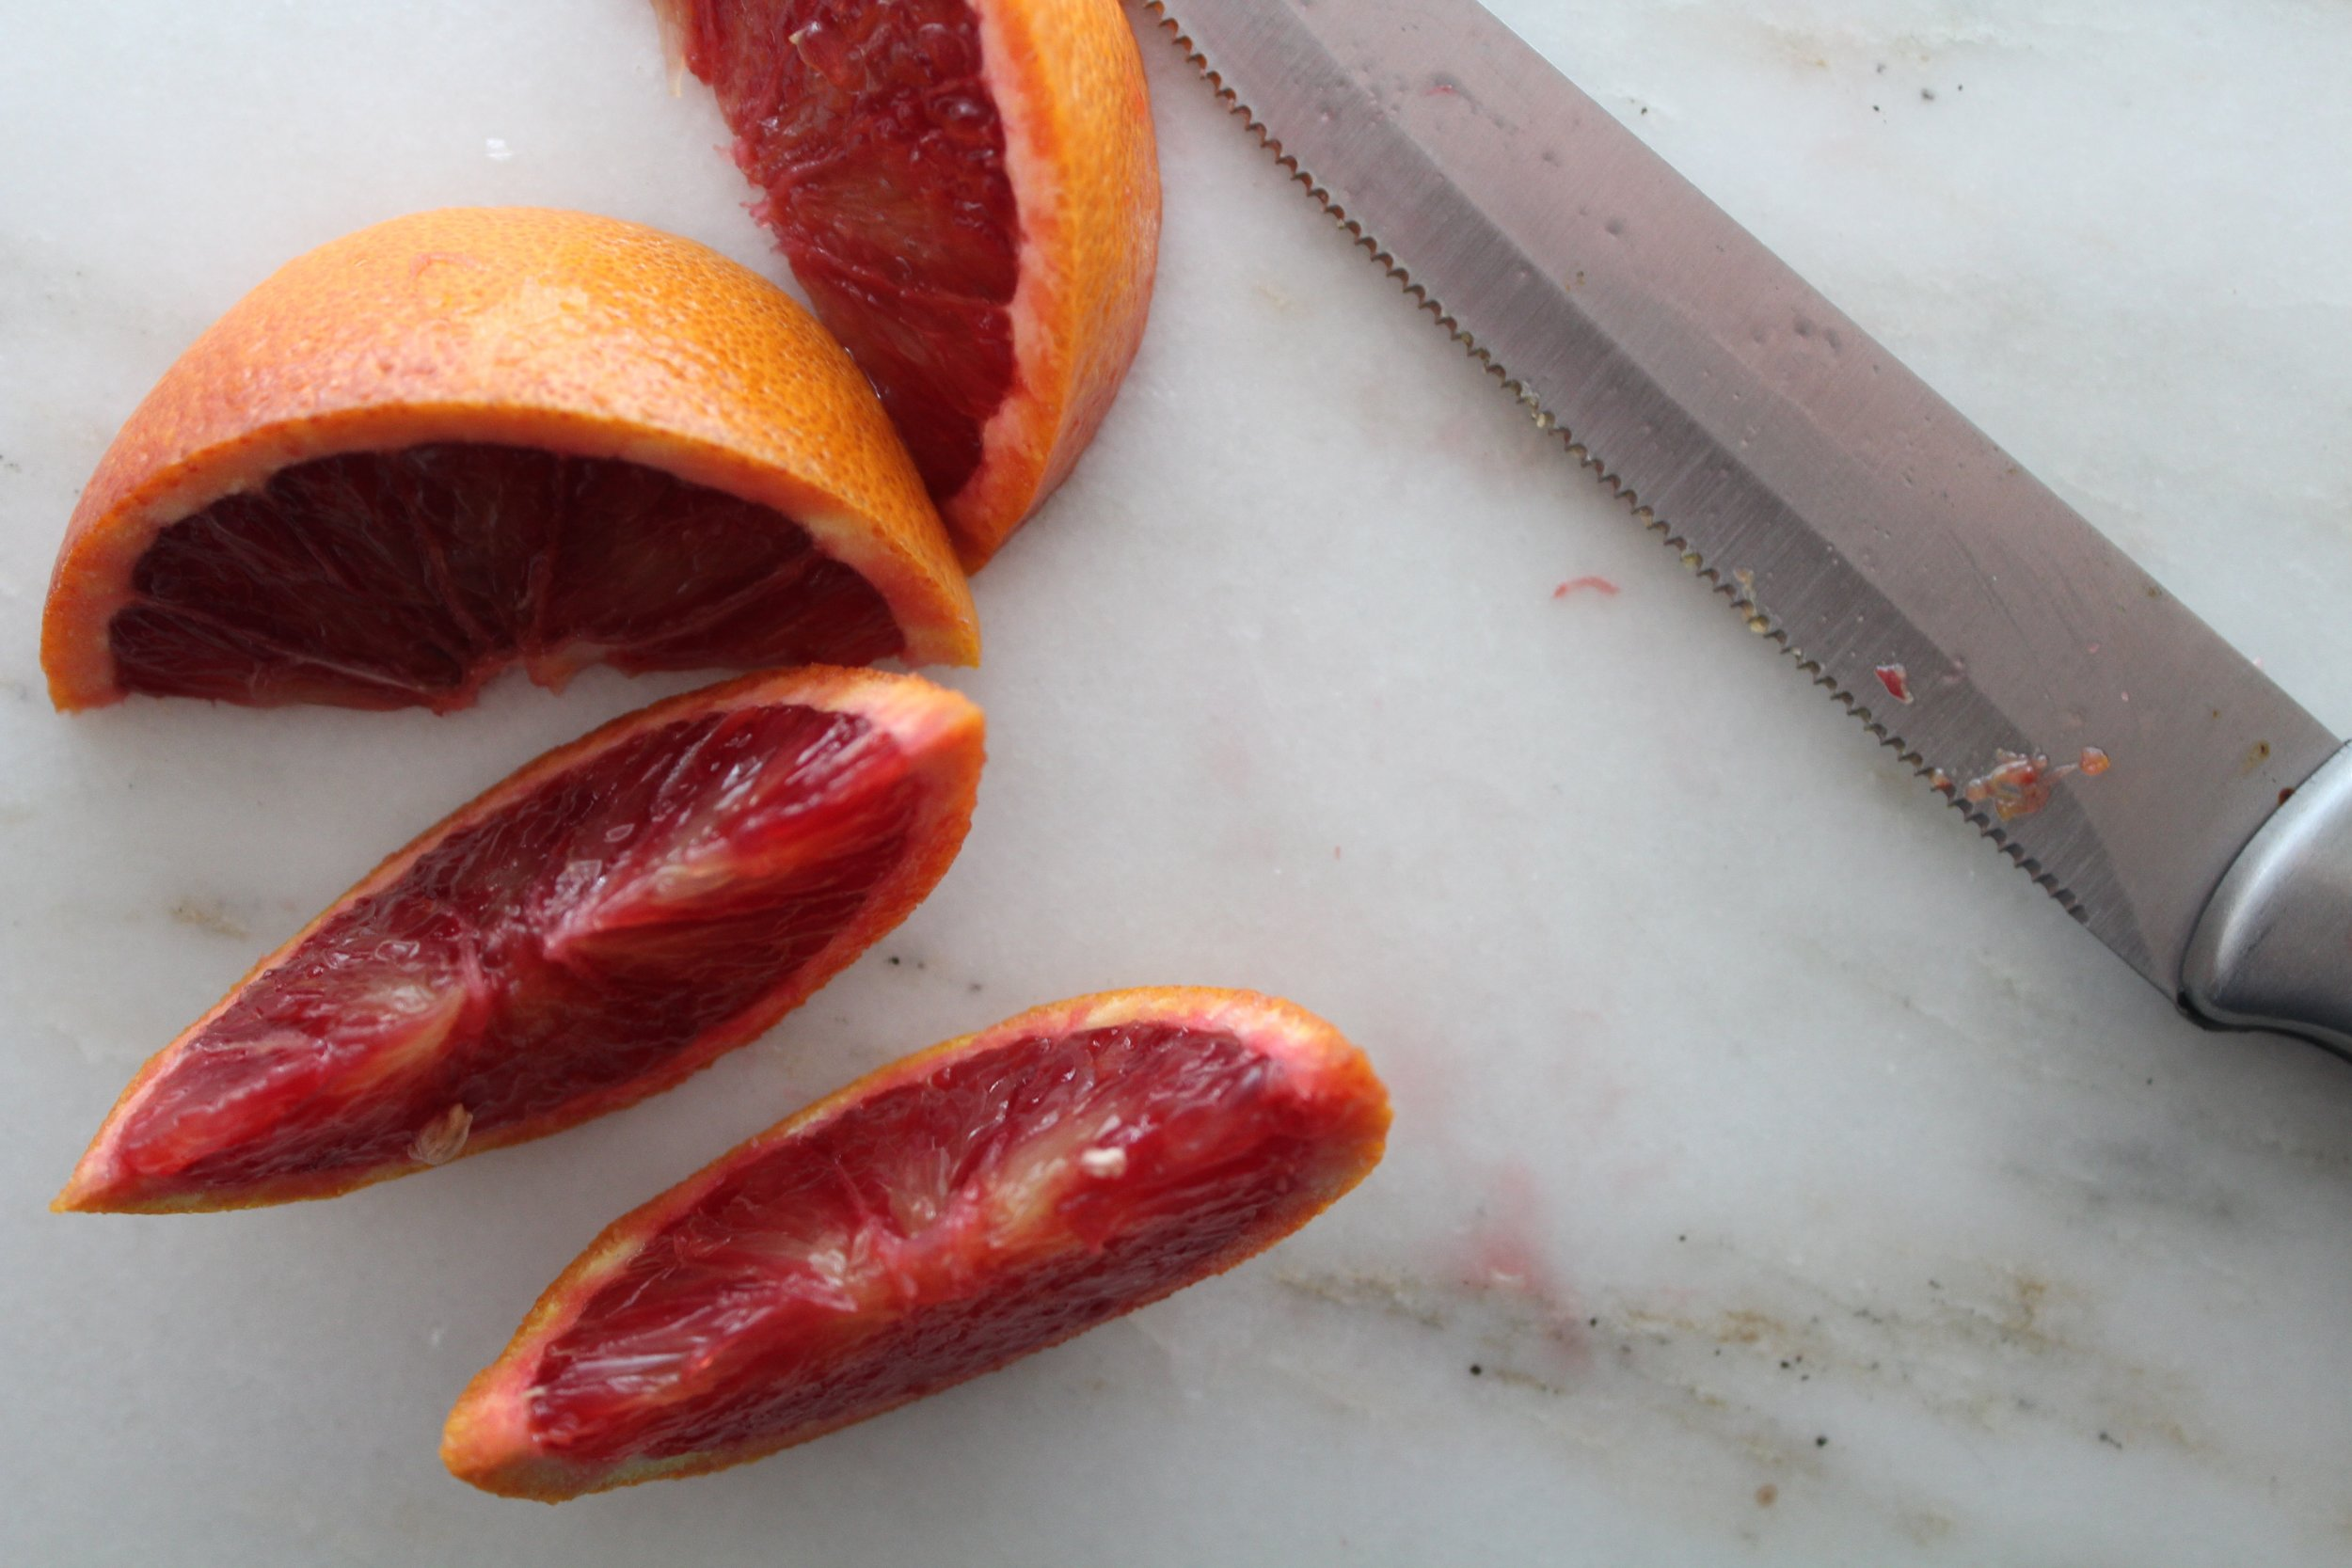 orange slices for garnishing